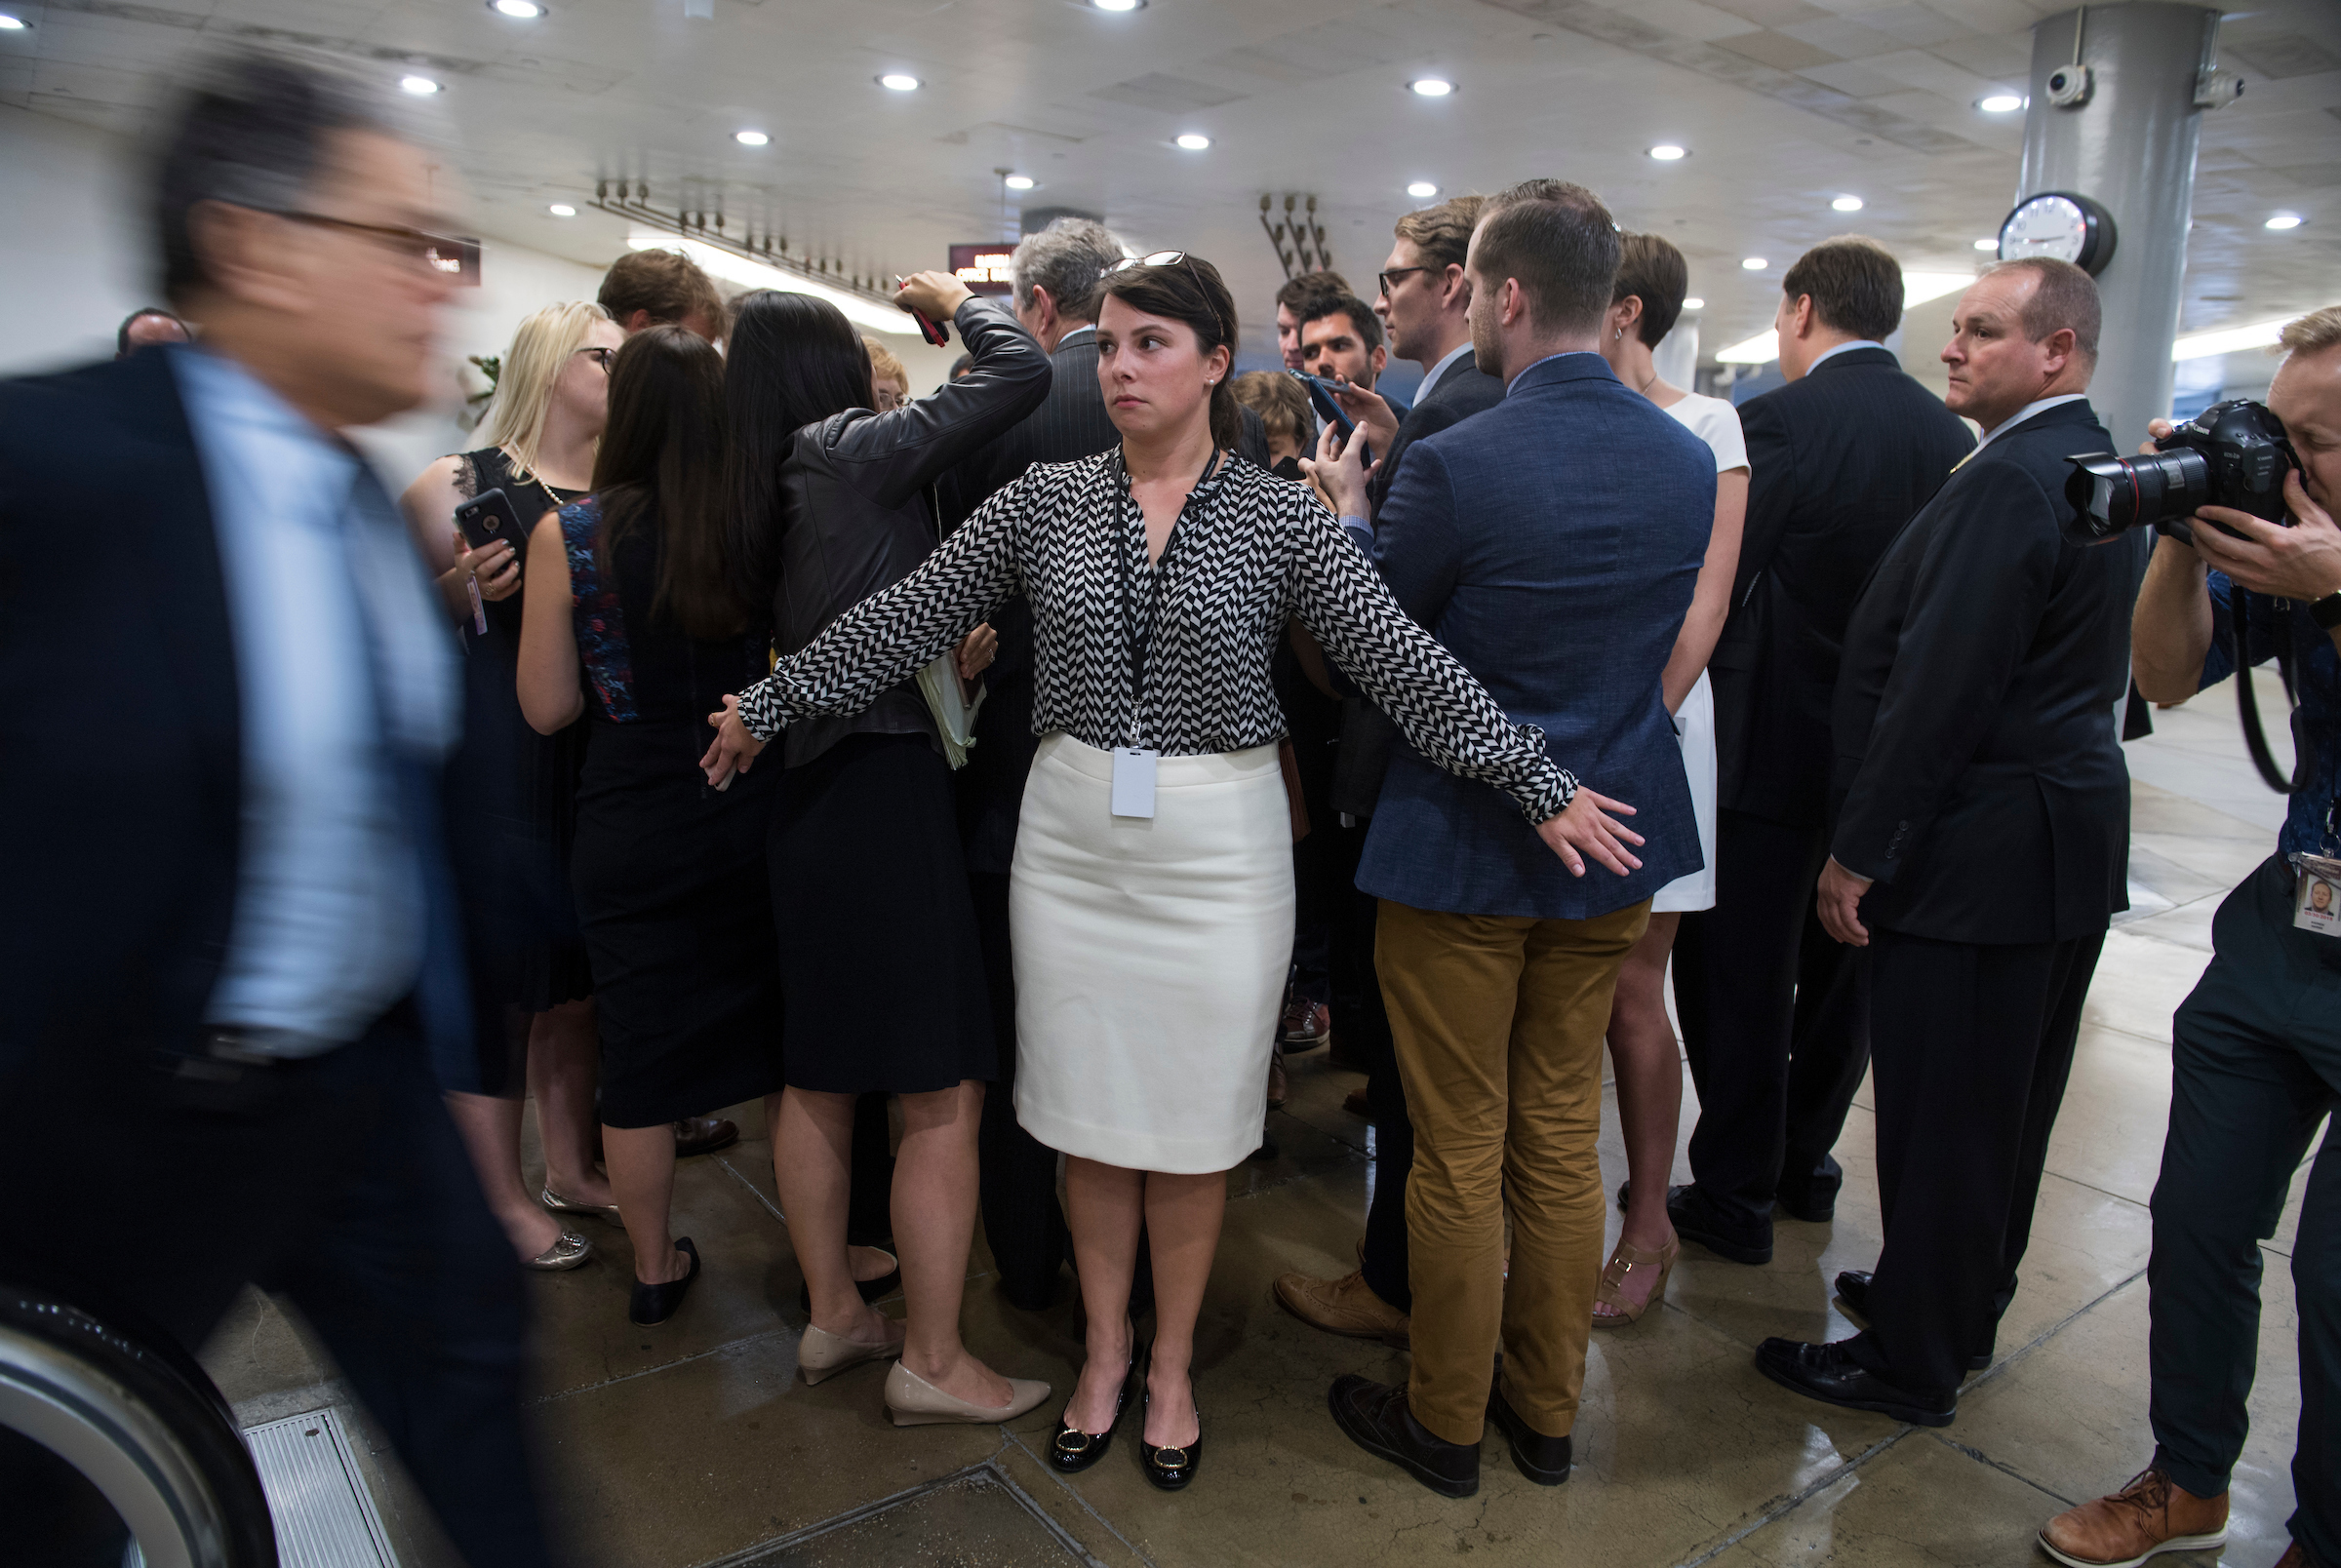 UNITED STATES - OCTOBER 24: Samantha Yeider of the Senate Press Gallery, keeps a path clear for Sen. Al Franken, D-Minn., in the basement of the Capitol on October 24, 2017. (Photo By Tom Williams/CQ Roll Call)